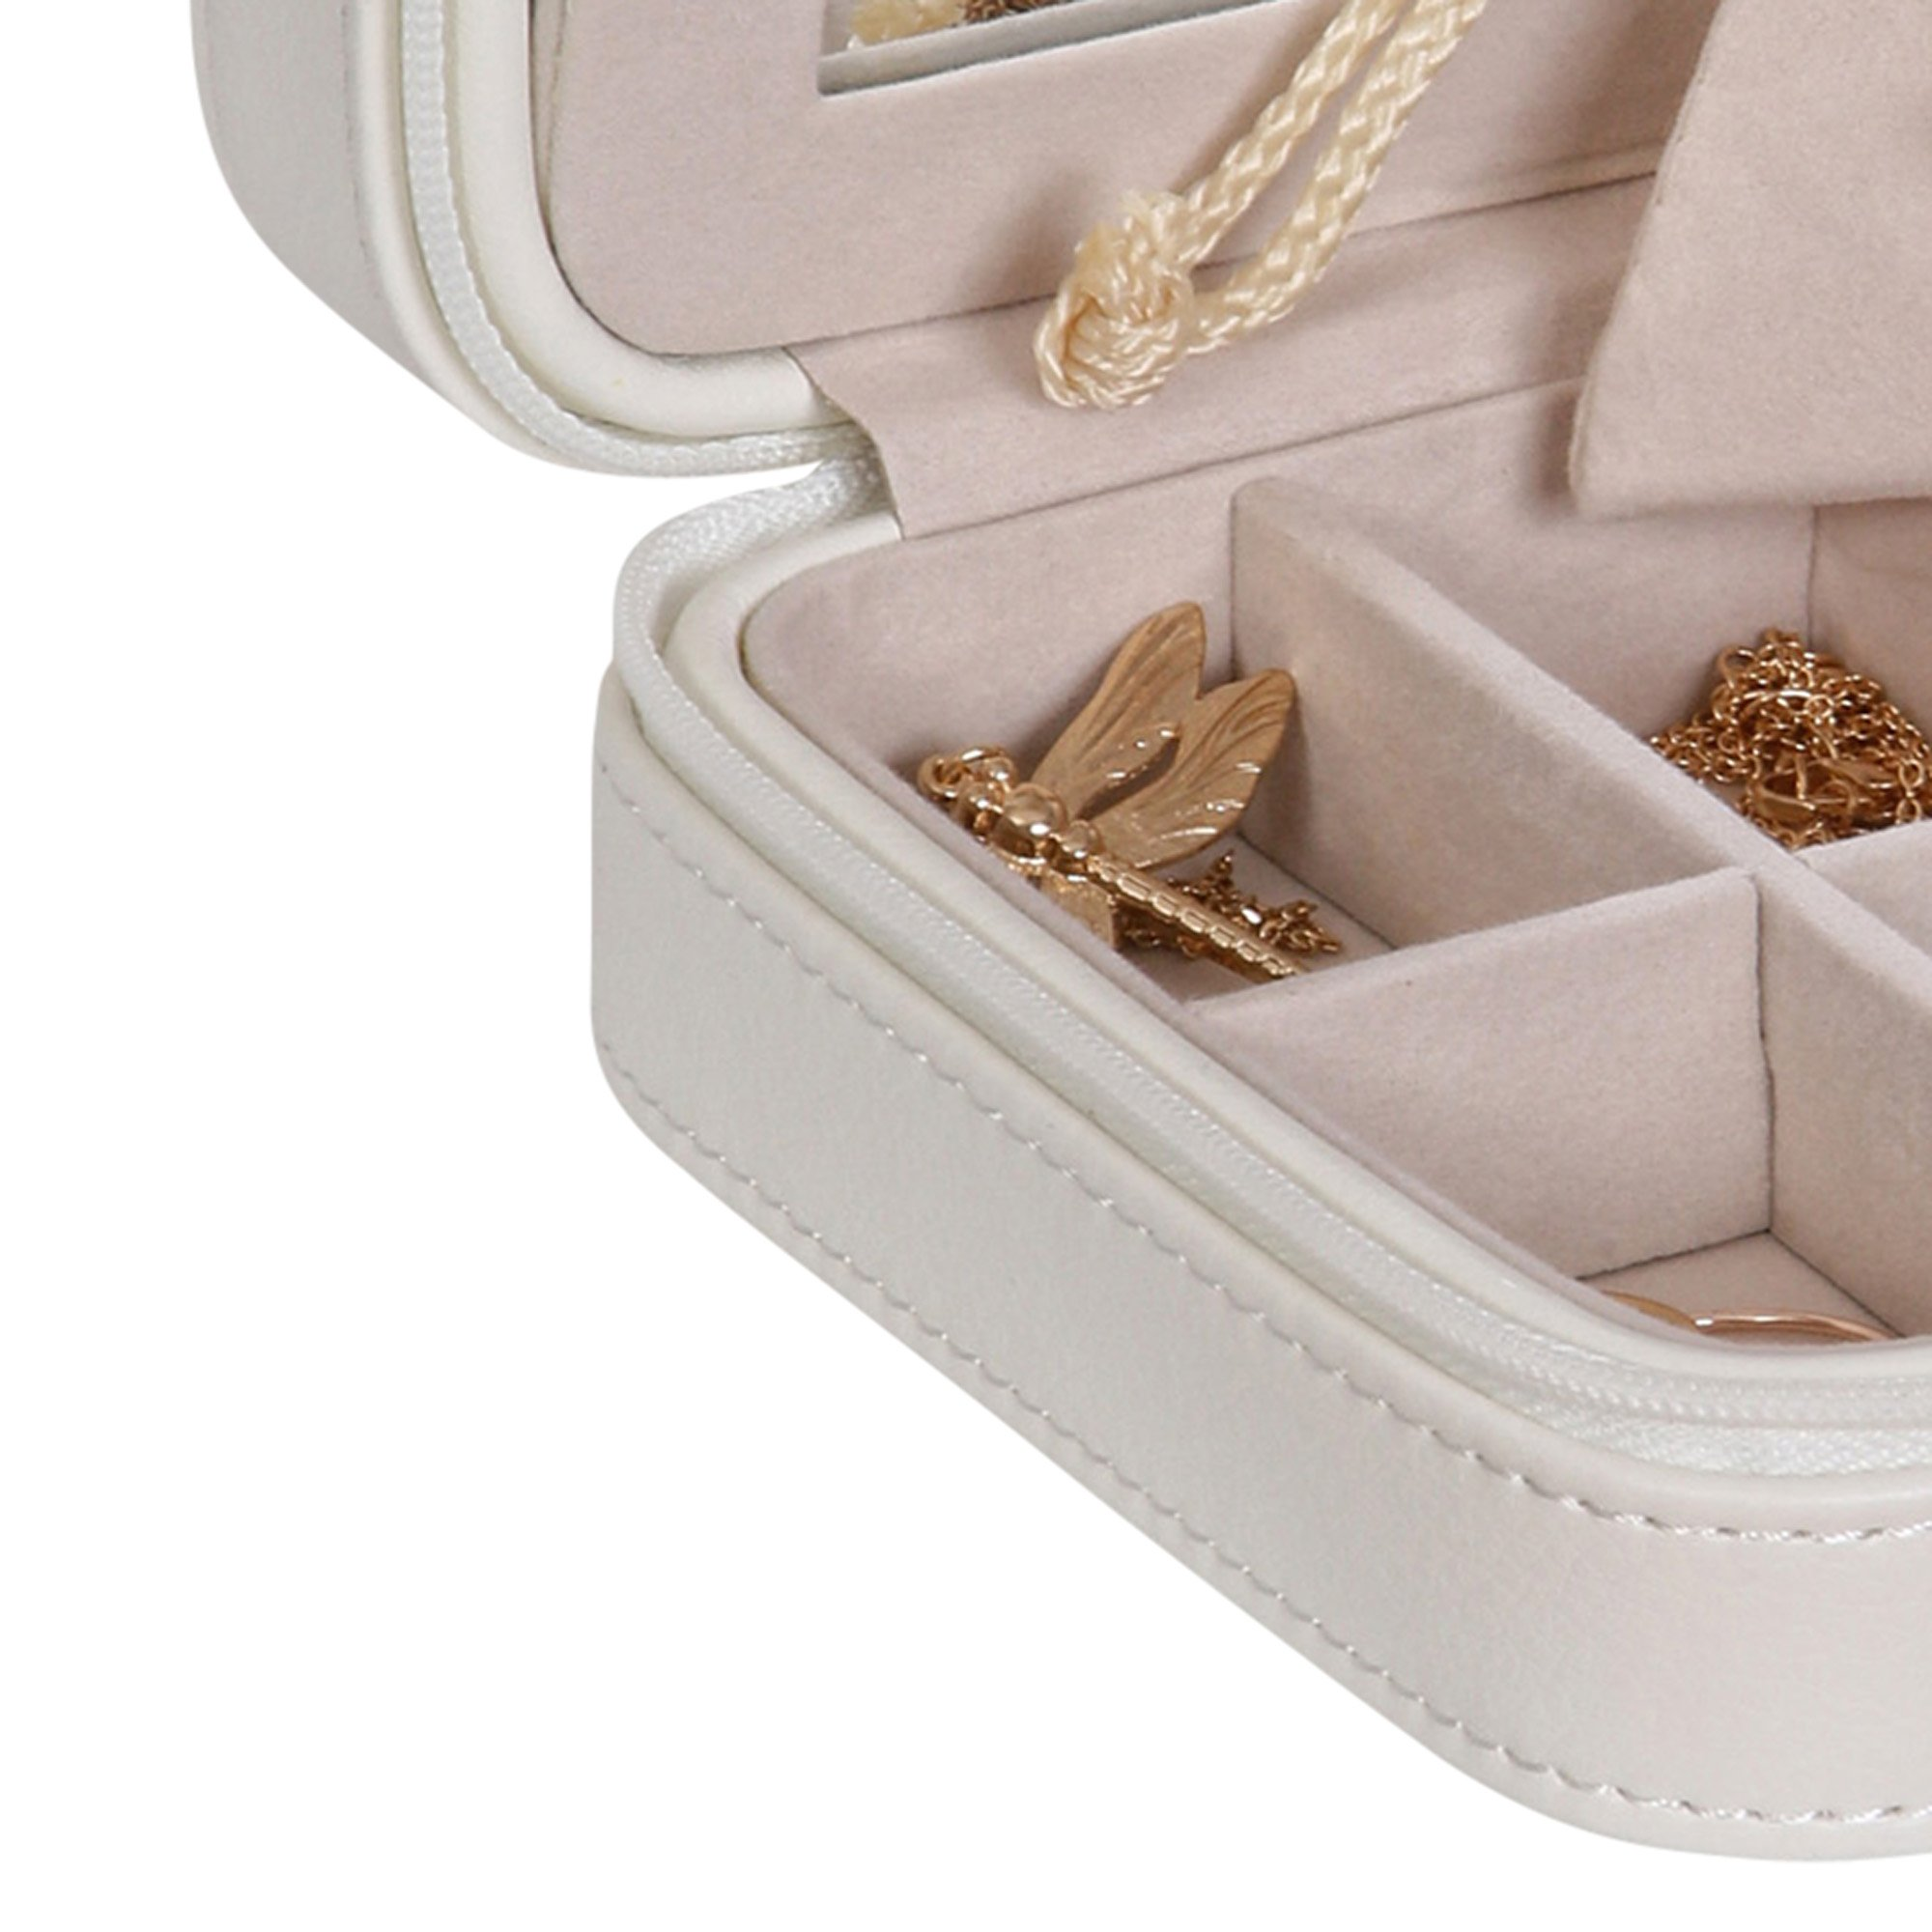 Mele & Co. Dana Travel Jewelry Case in Faux Leather (Ivory) by Mele & Co. (Image #5)